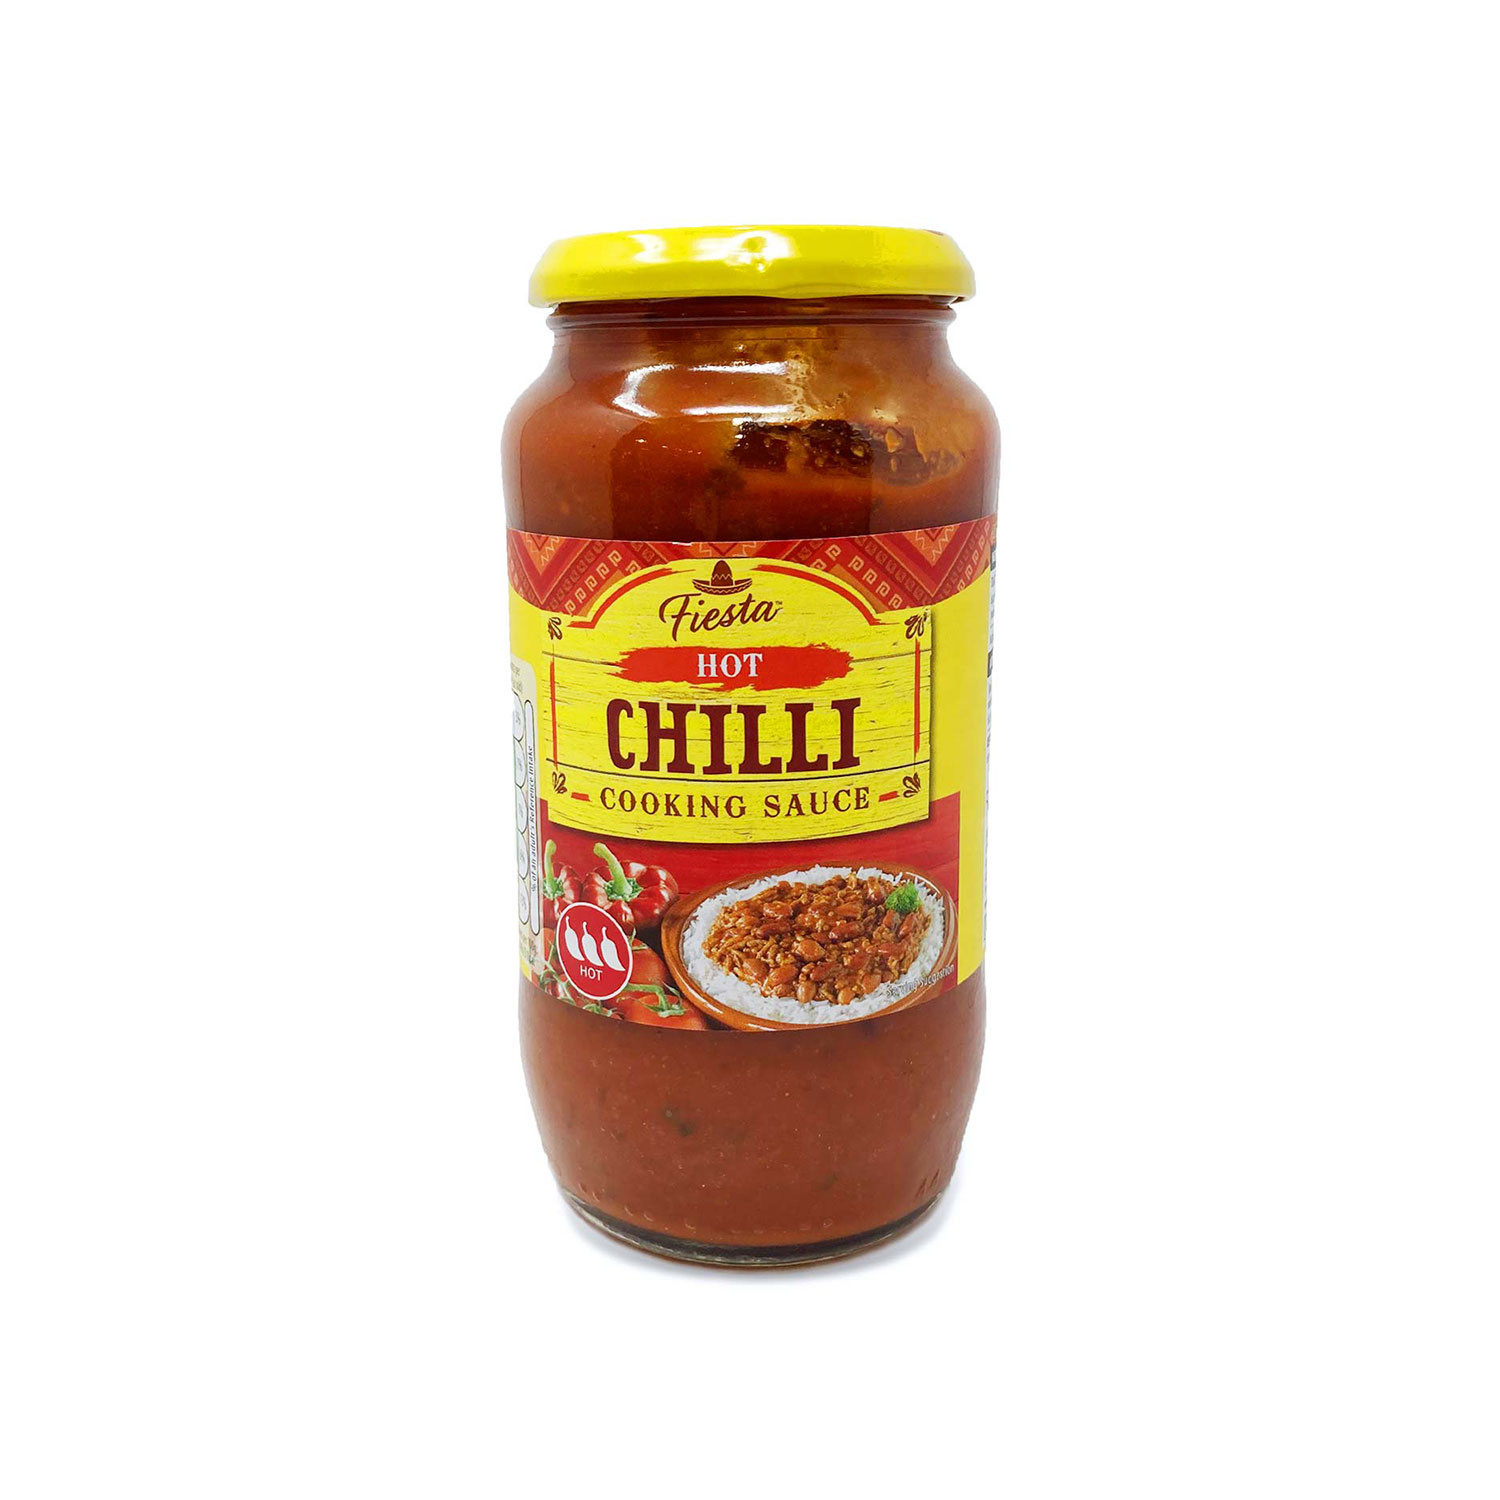 Hot Chilli Cooking Sauce